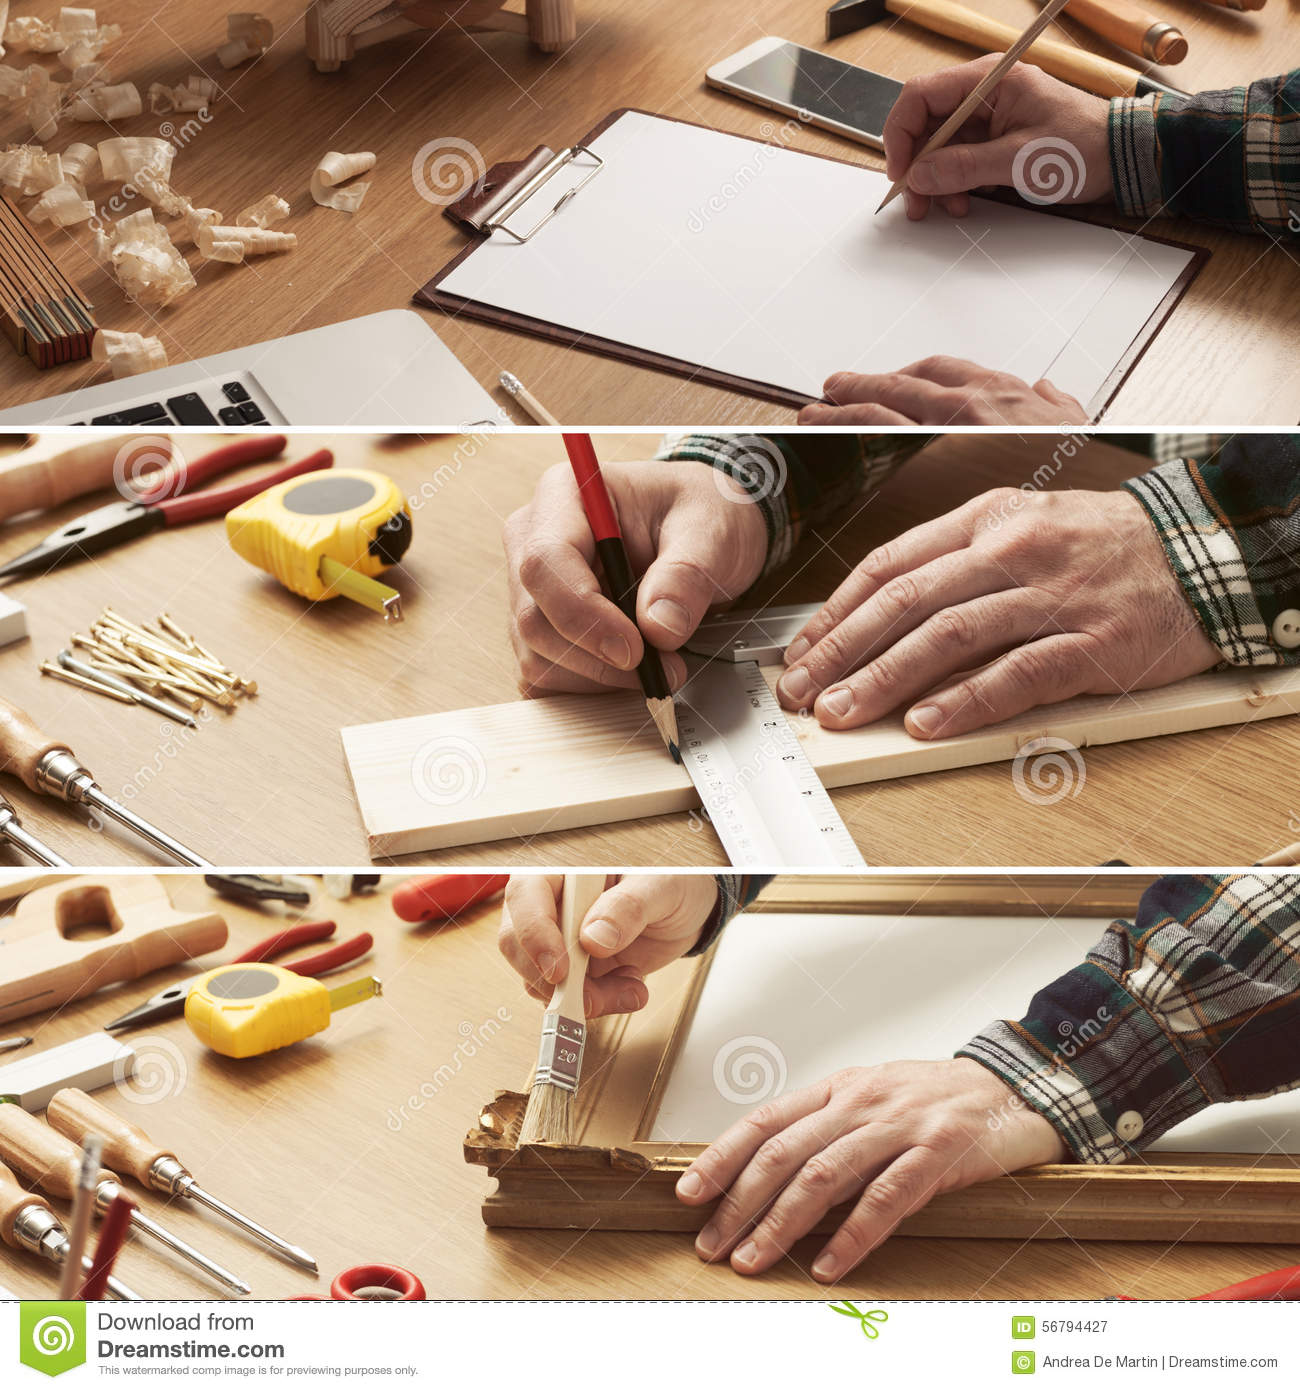 Diy and carpentry collage stock image image of collage for Do it yourself home improvement projects